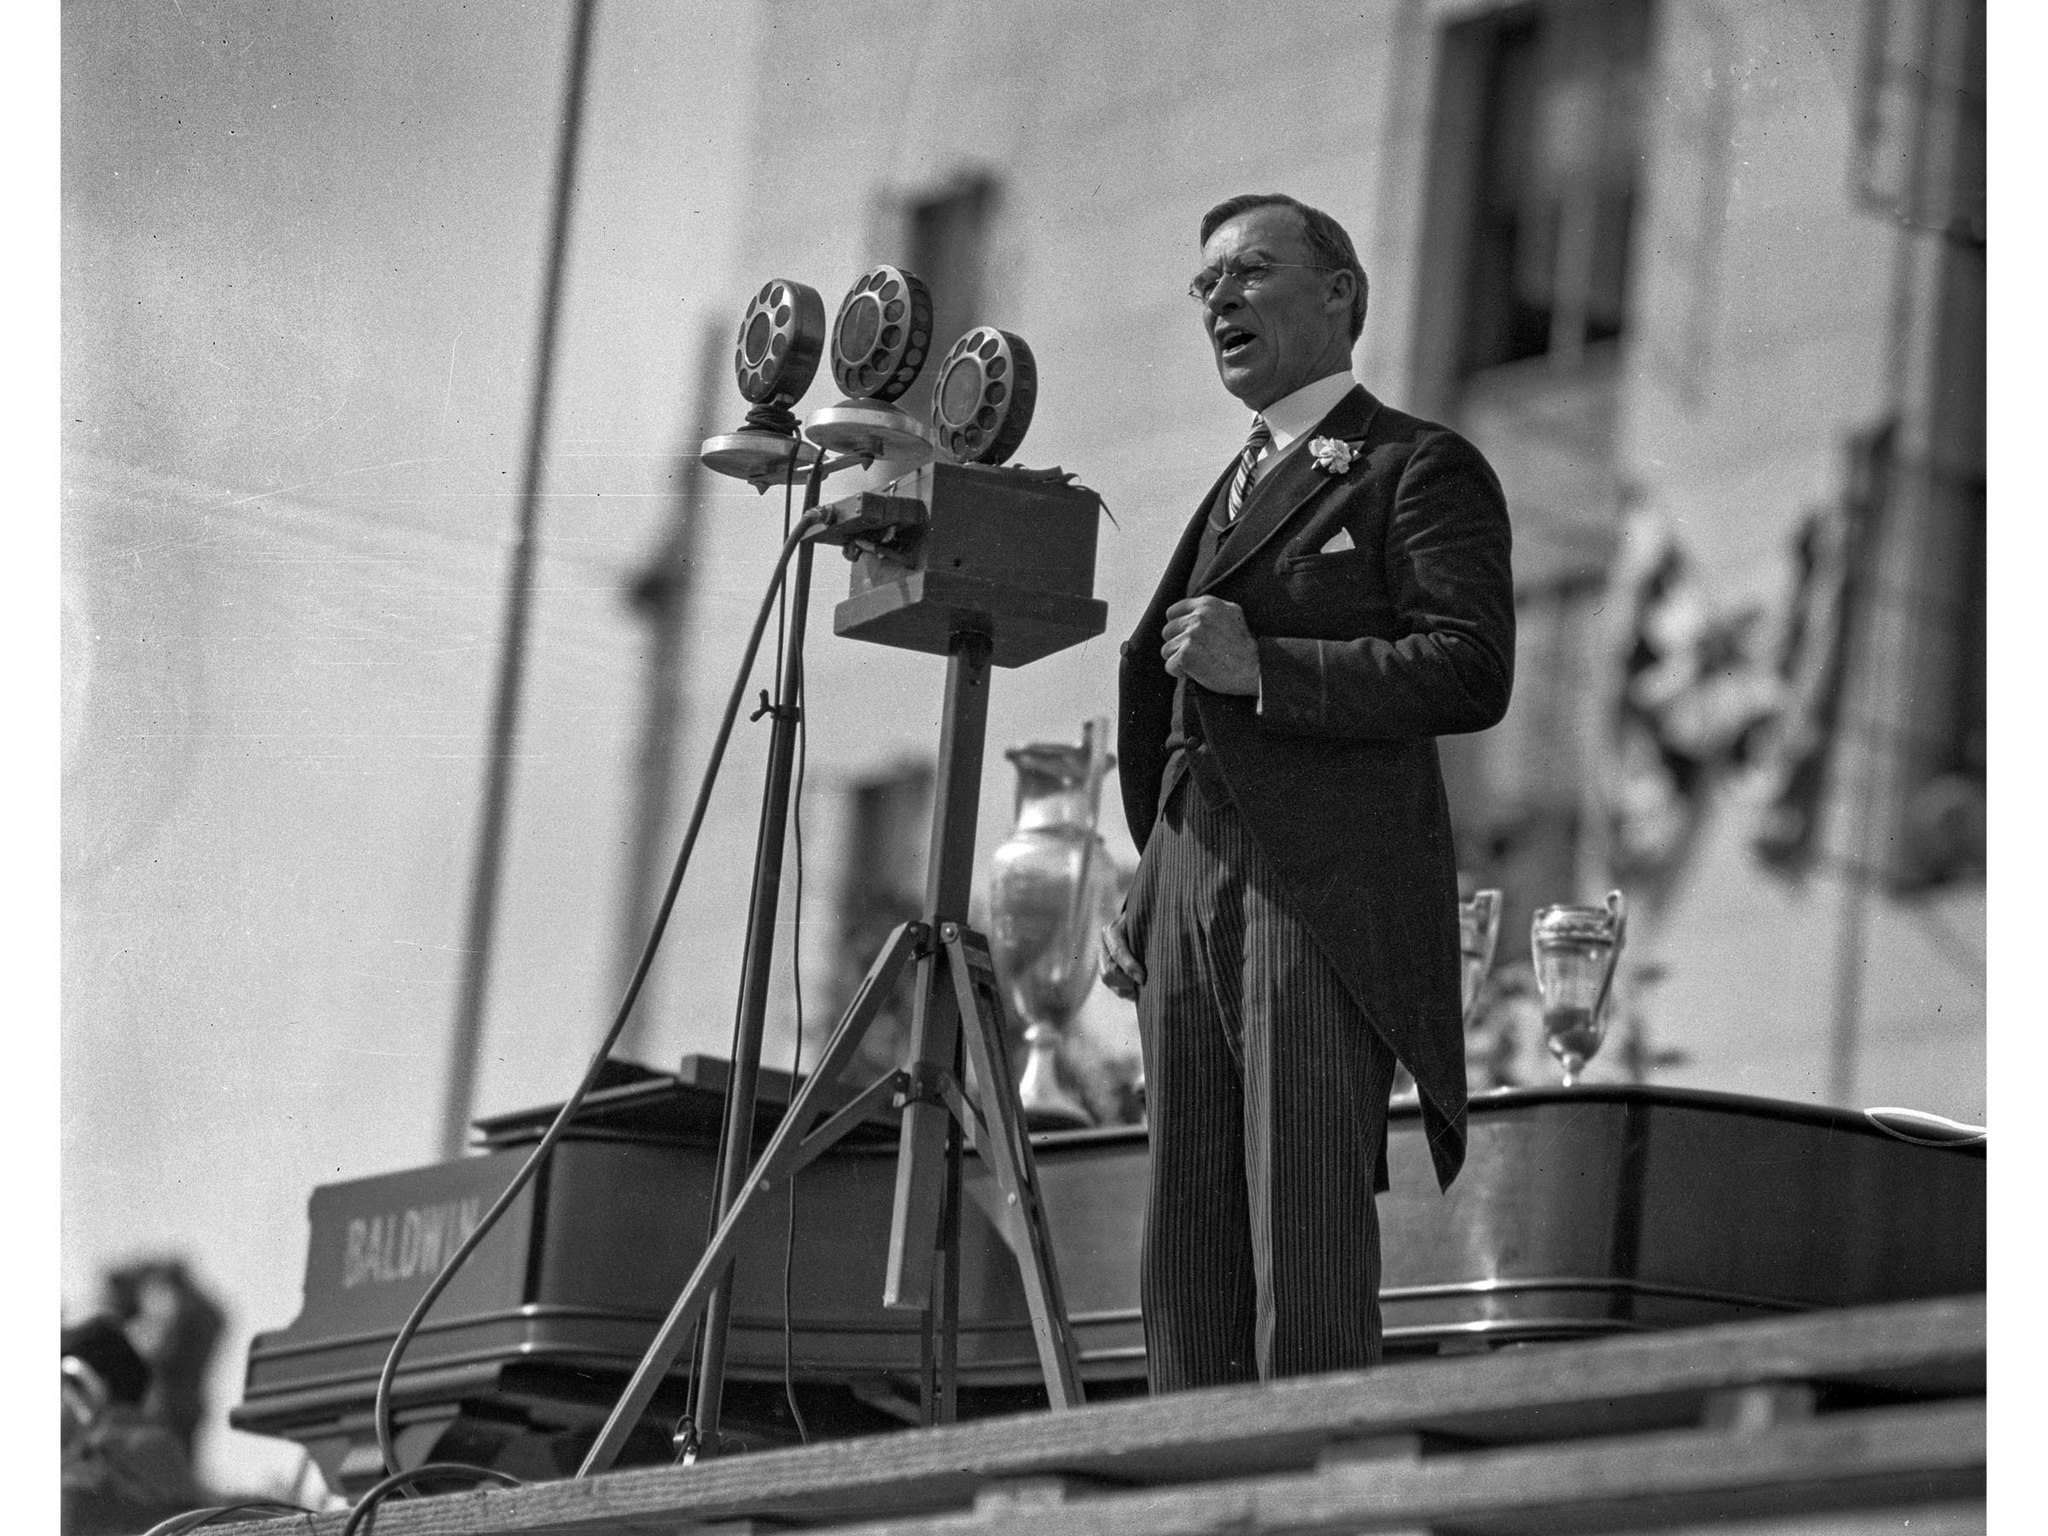 April 26, 1928: Mayor George E. Cryer gives a speech at dedication ceremonies for the new Los Angele